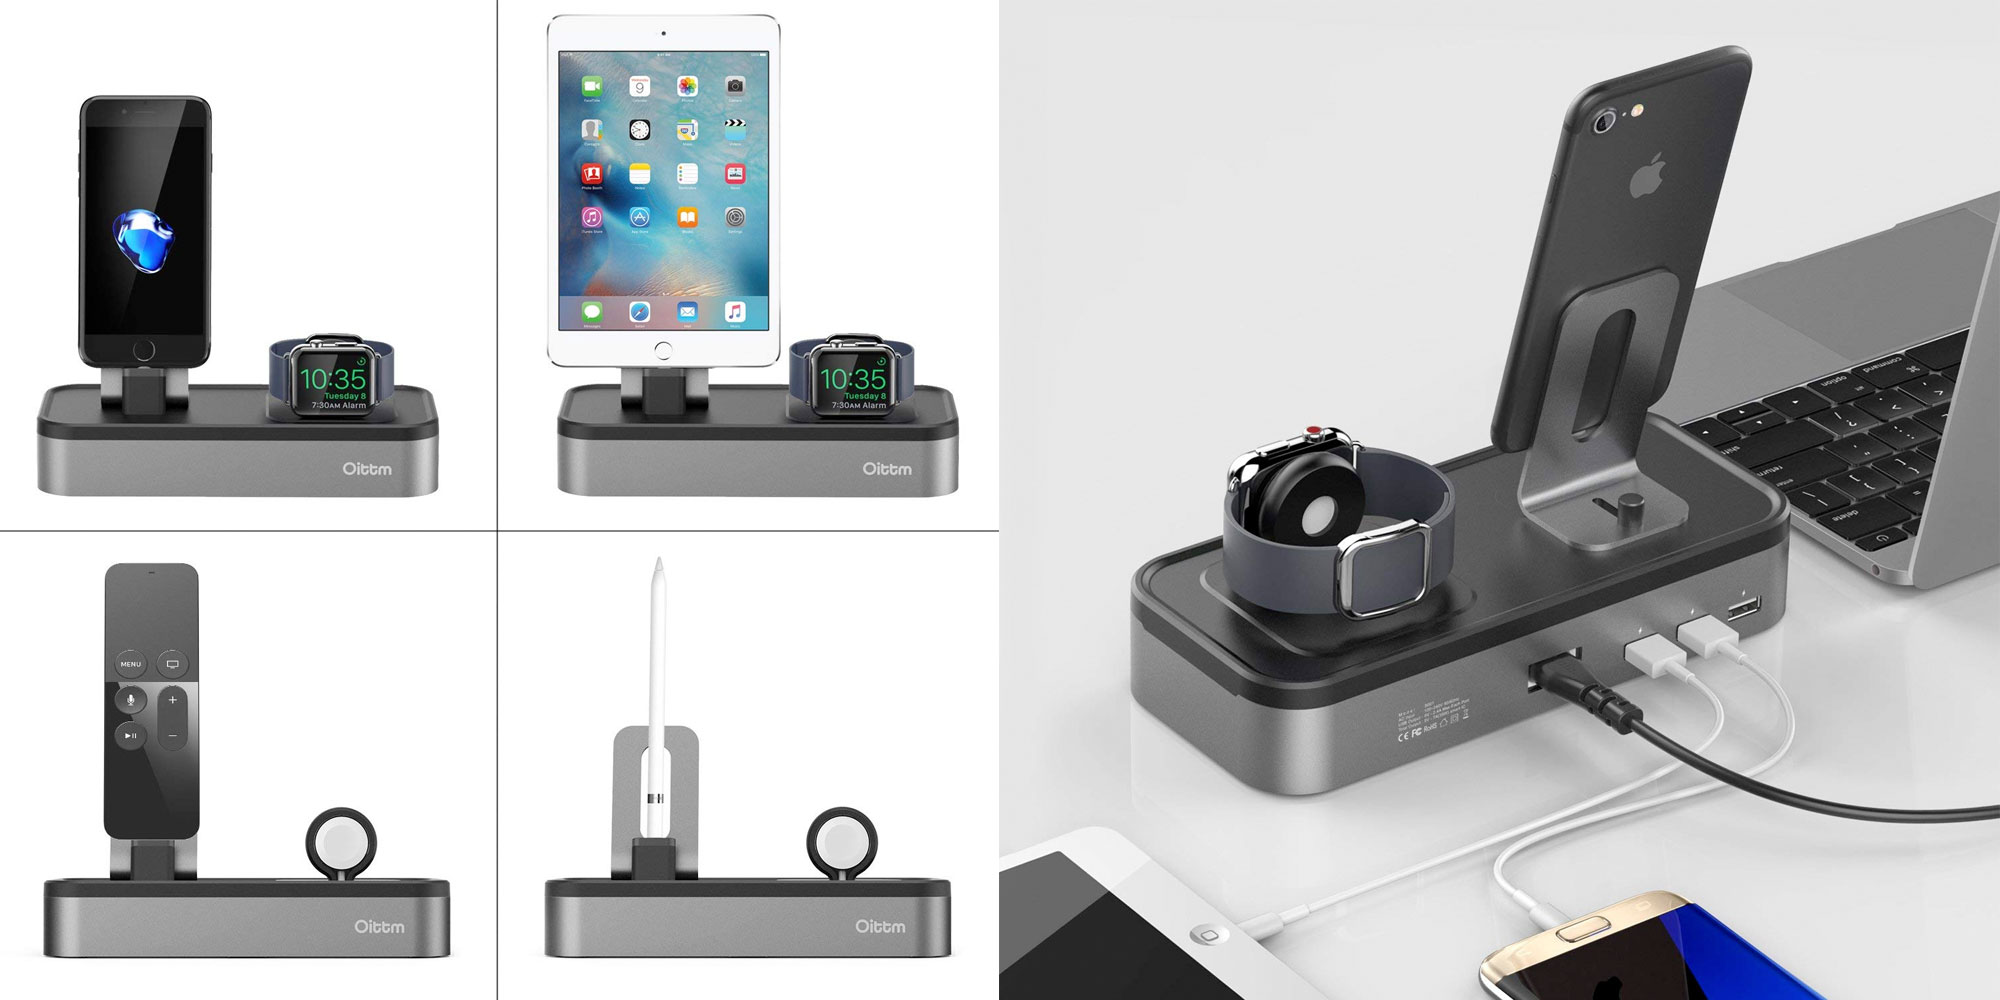 This dock charges your iPhone, Apple Watch, and three other devices for $23.50